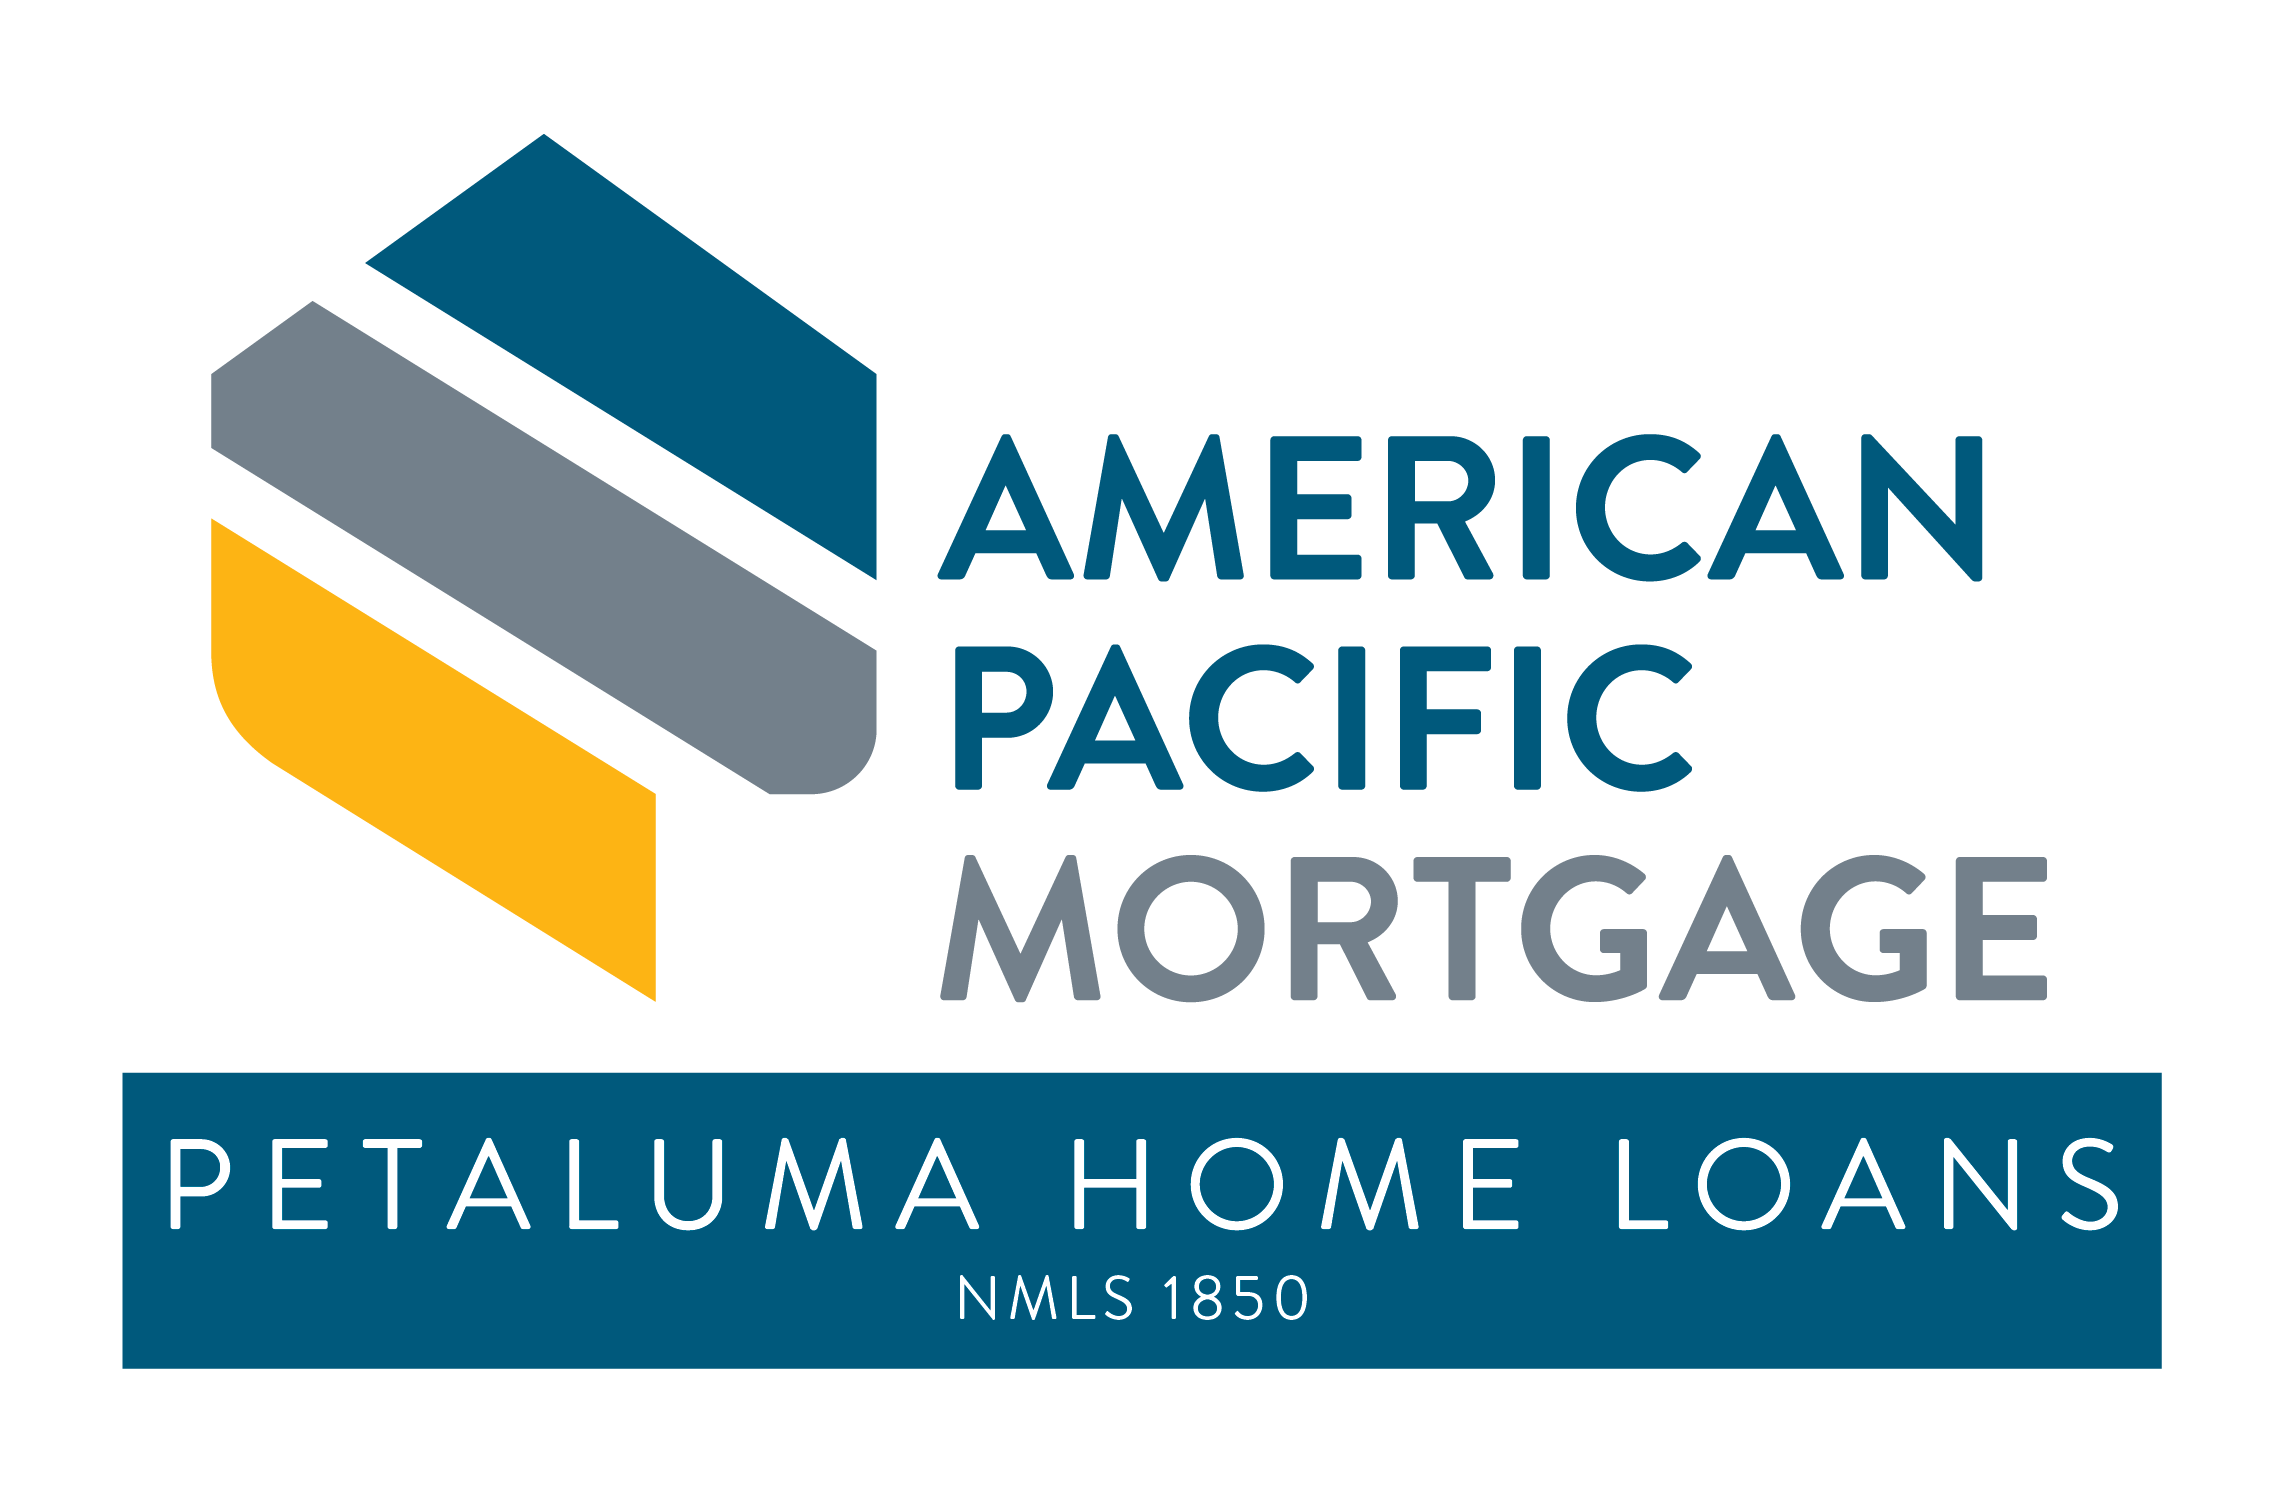 Kenneth McCoy (NMLS #218630) reviews | Mortgage Lenders at 628 E Washington Street - Petaluma CA